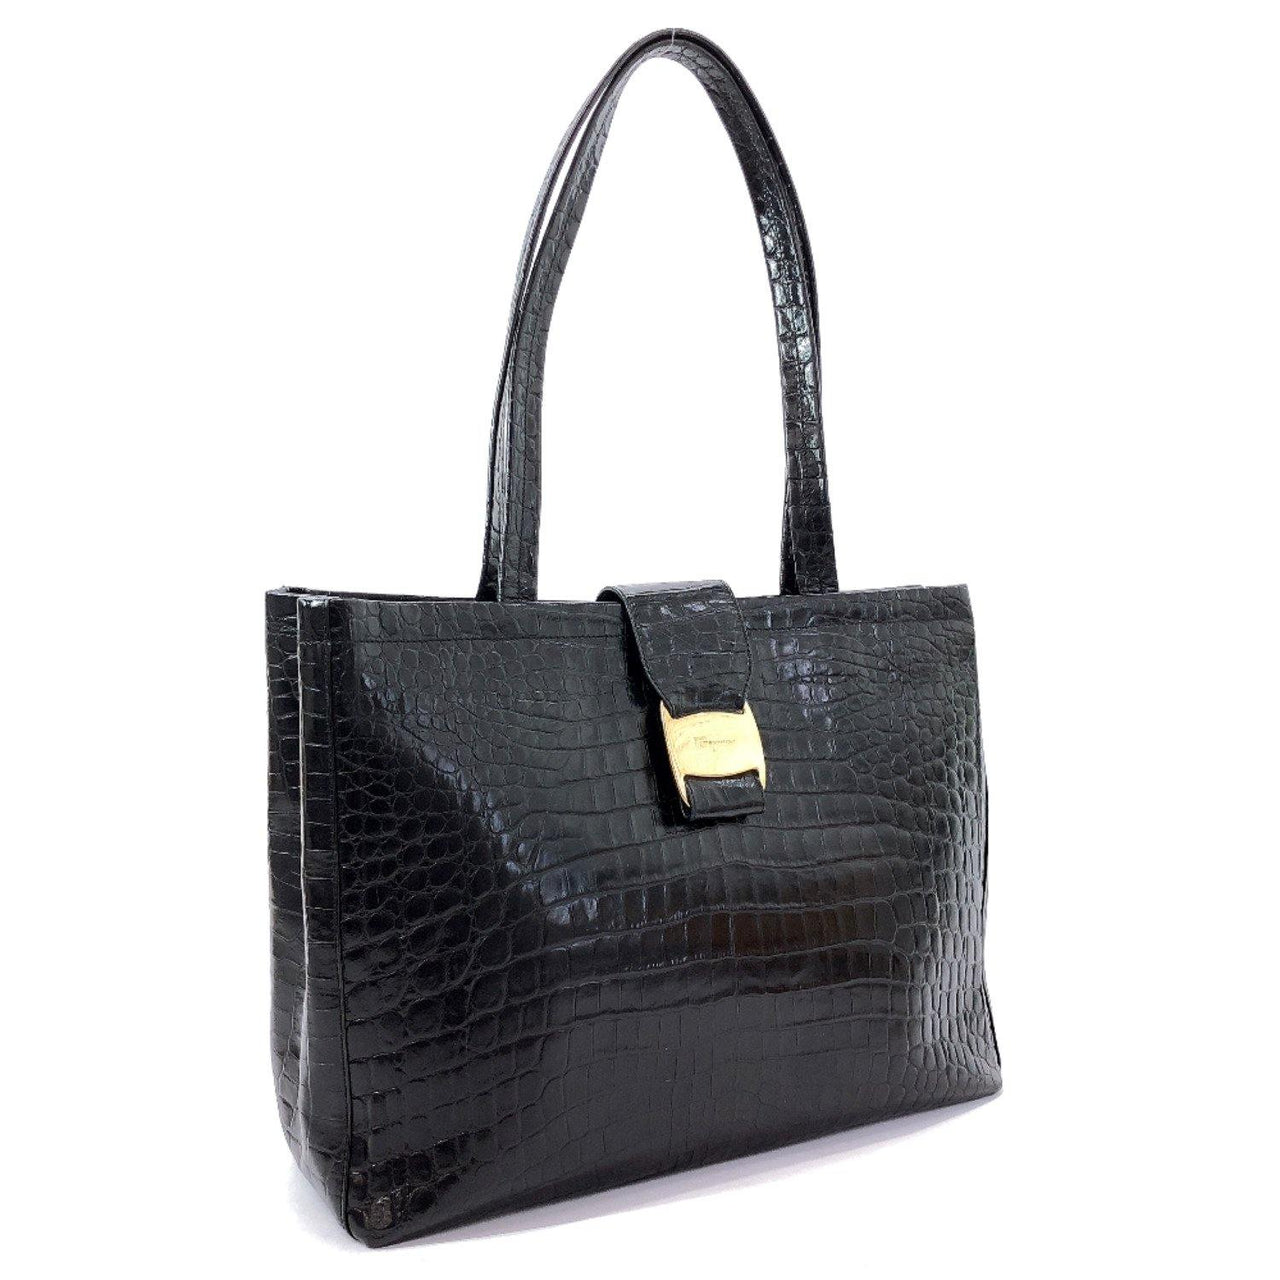 Salvatore Ferragamo Tote Bag BA-21 Vala embossed leather leather black Women Used - JP-BRANDS.com